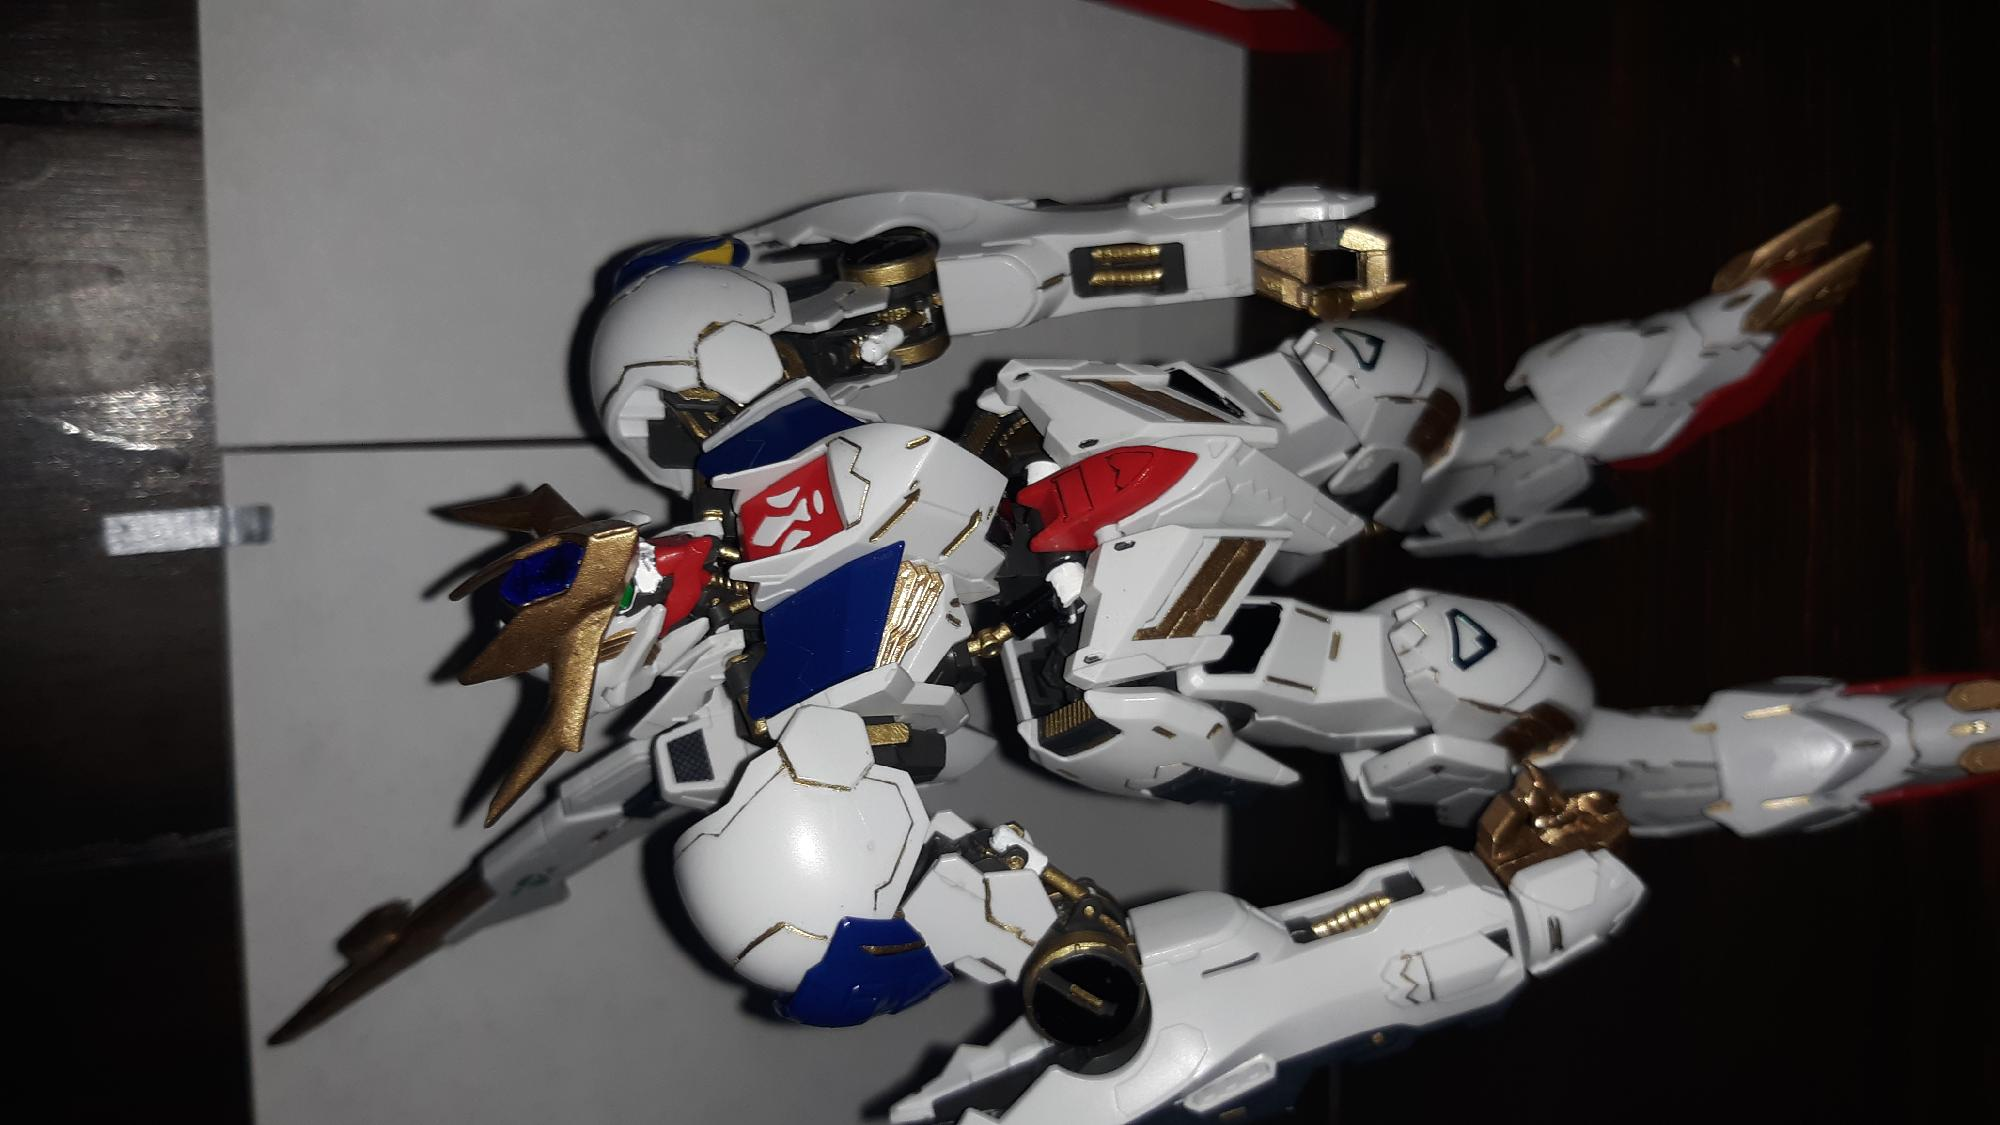 B- panel lined in gold friggin sweet